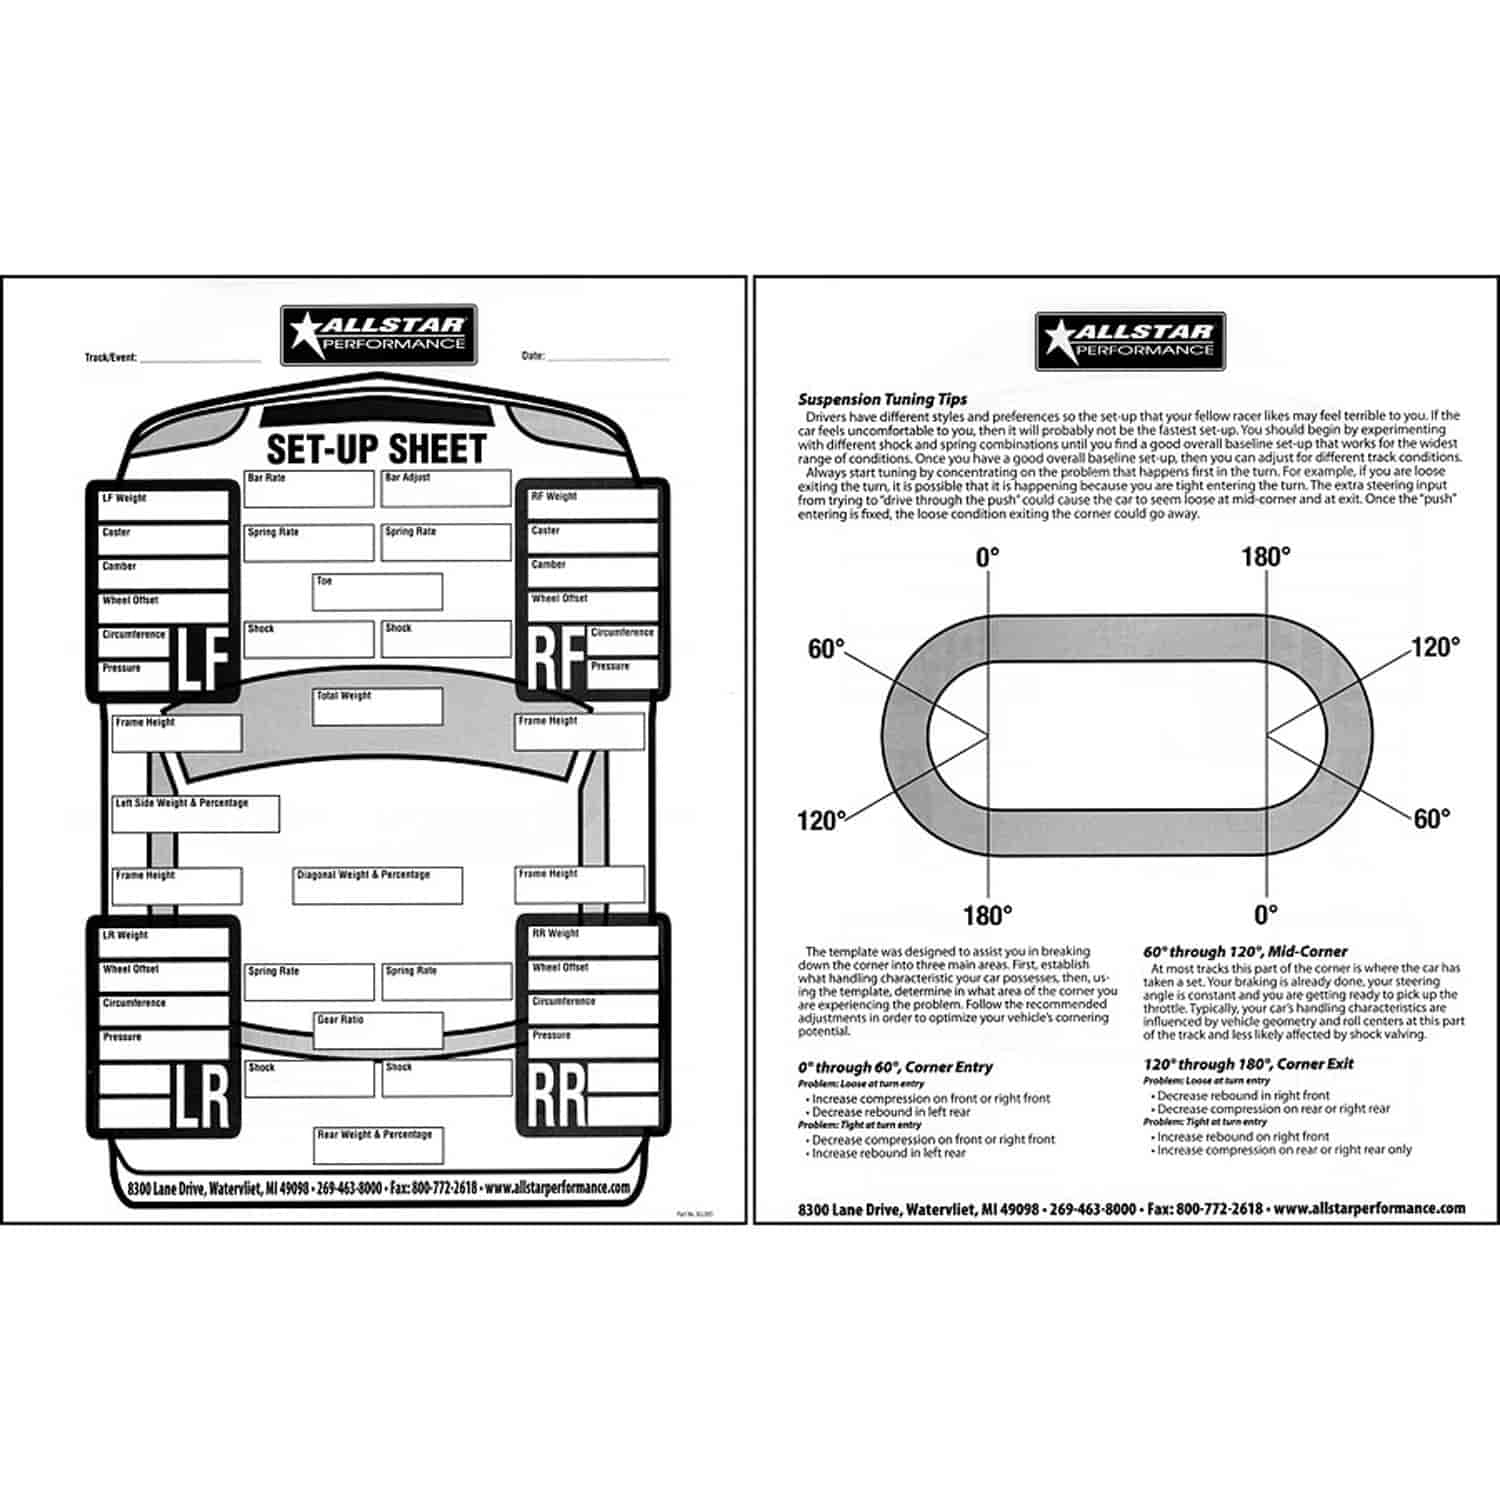 Allstar Performance All045 Circle Track Set Up Sheets 50 Pages 8 1 2 X 11